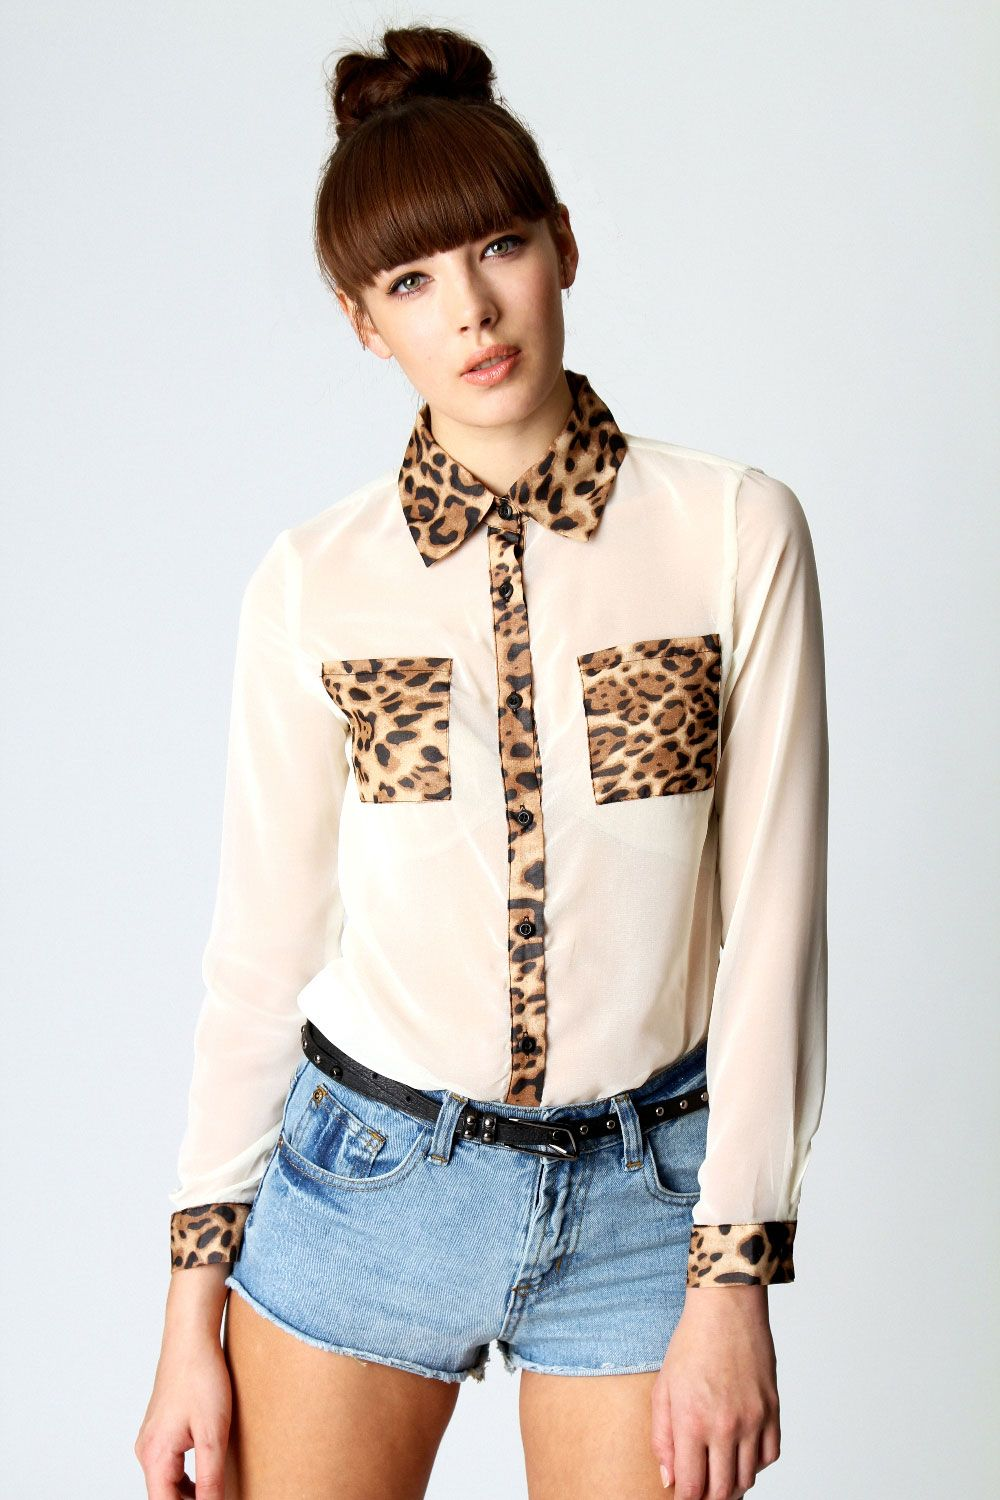 f34d68b5cc need to get my hands on some cheetah print clothing